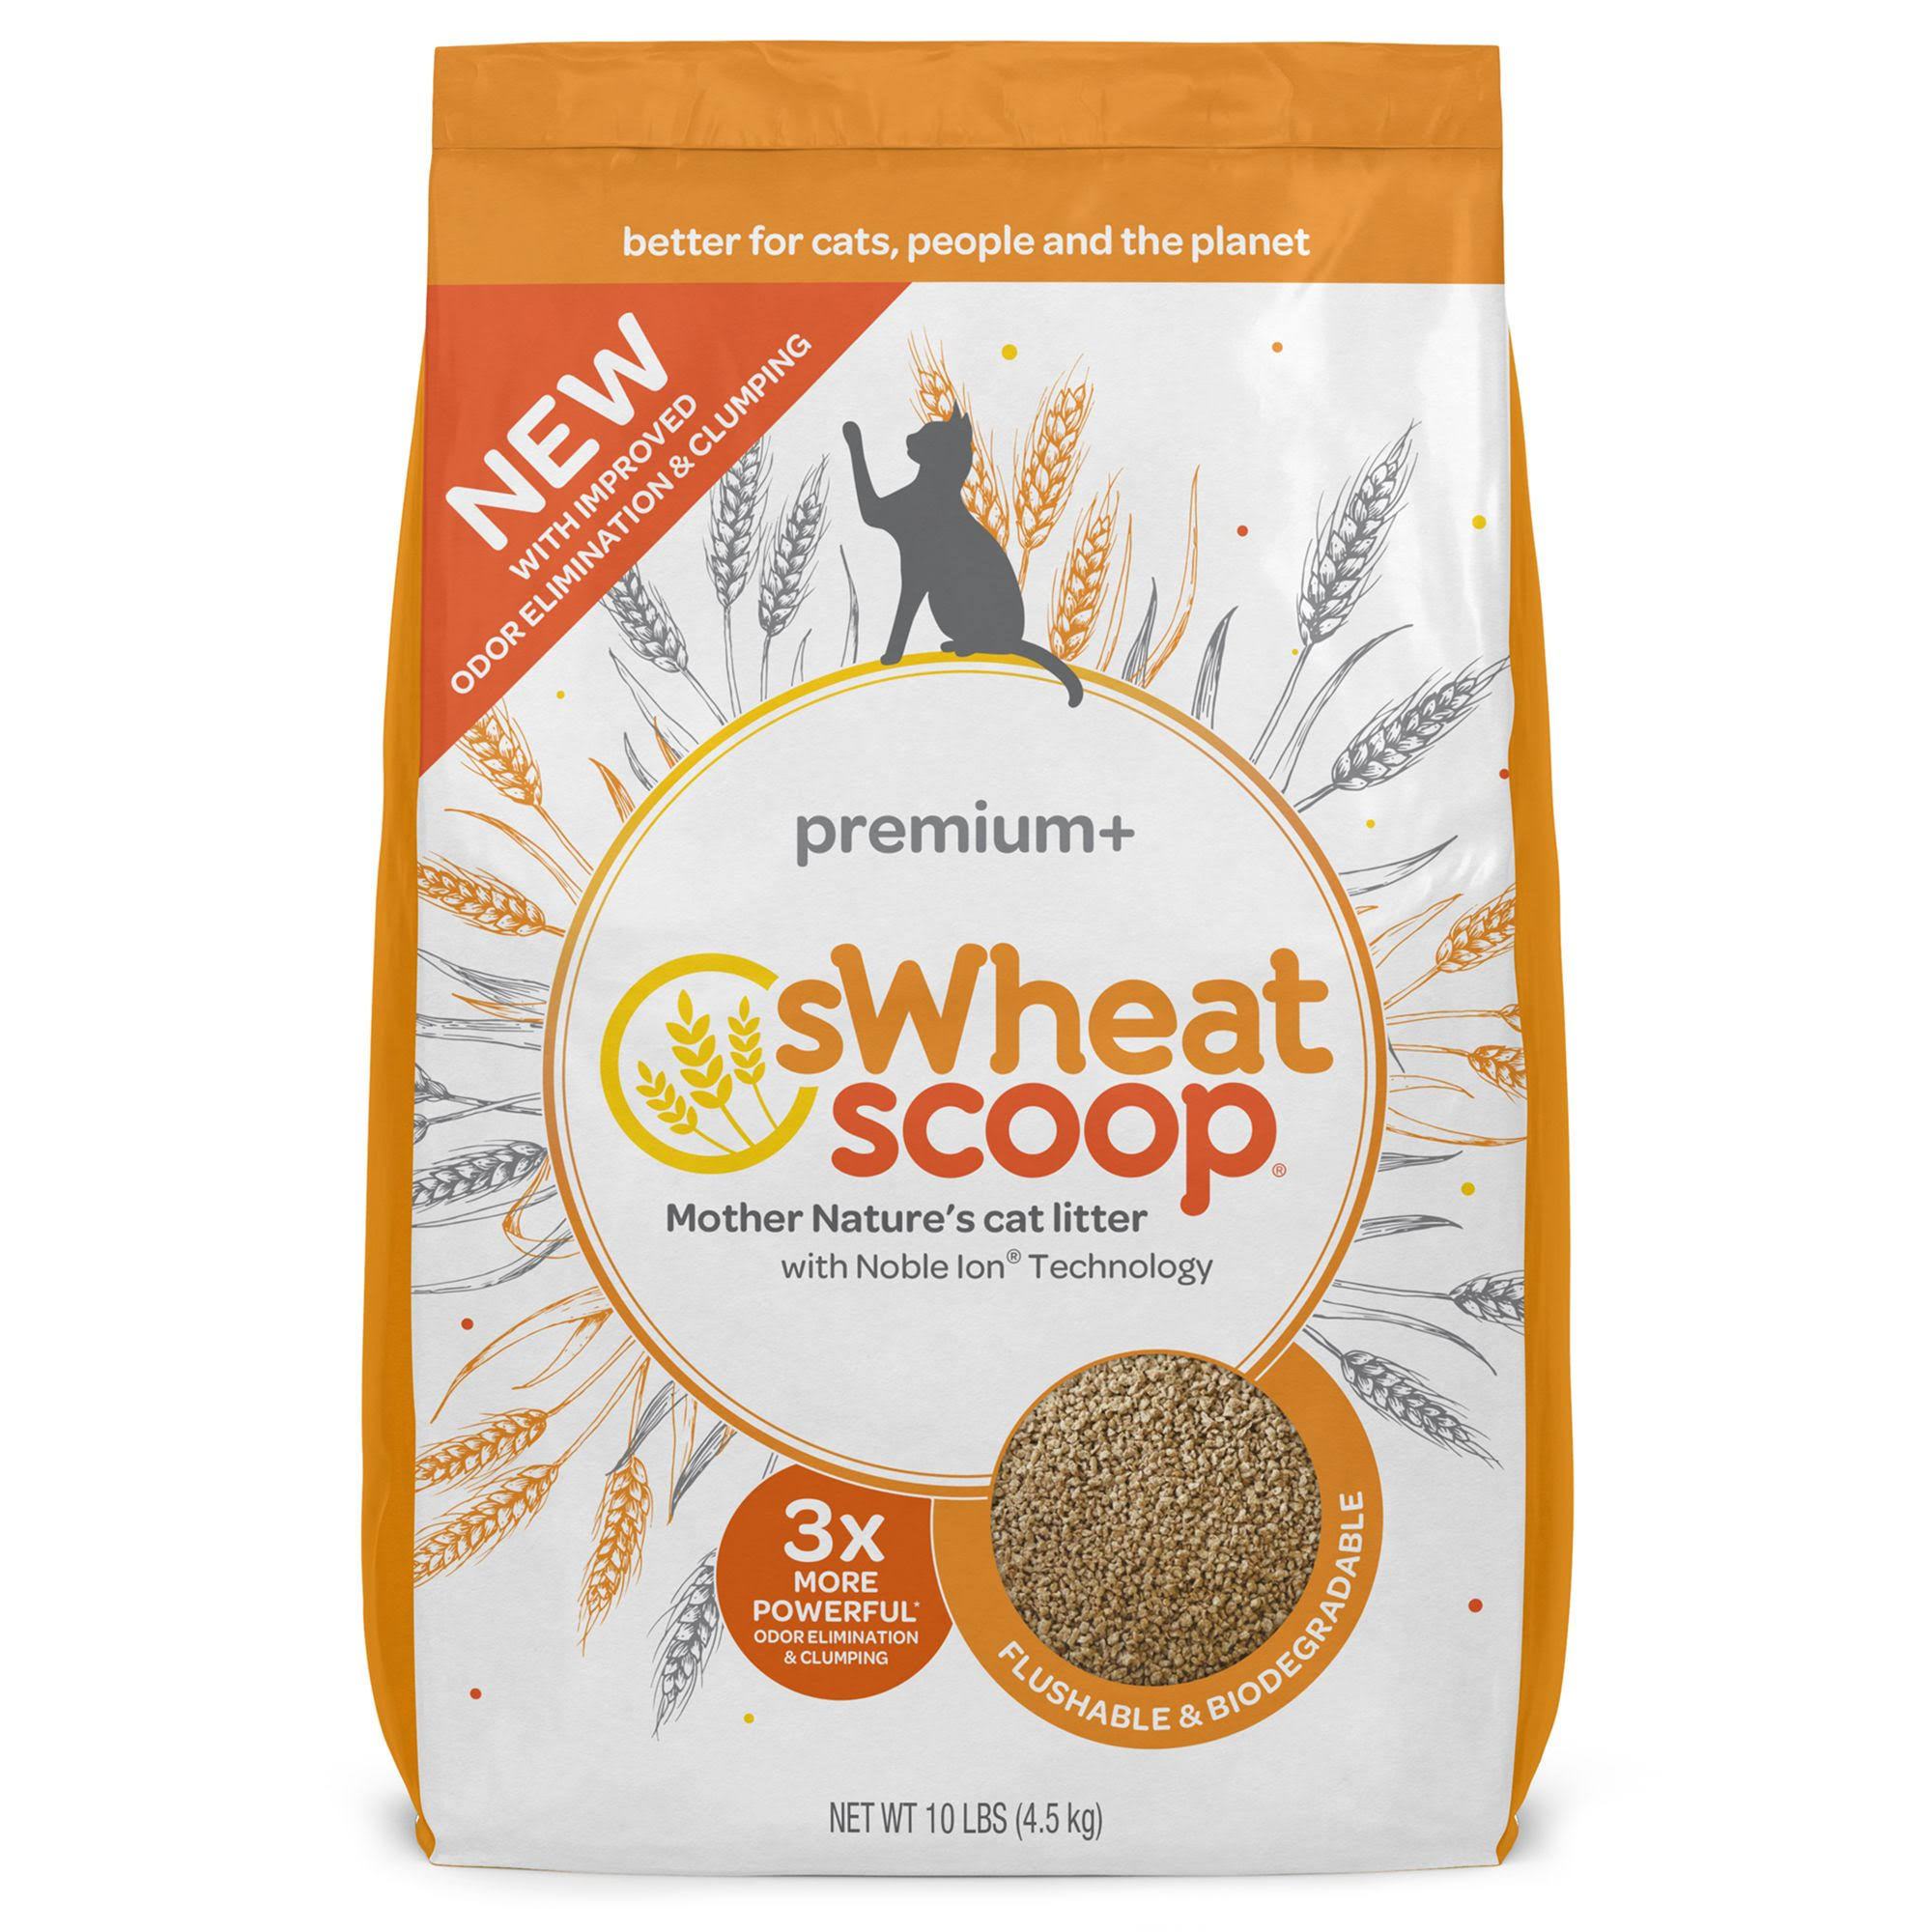 sWheat Scoop Premium+ Litter 10 lb